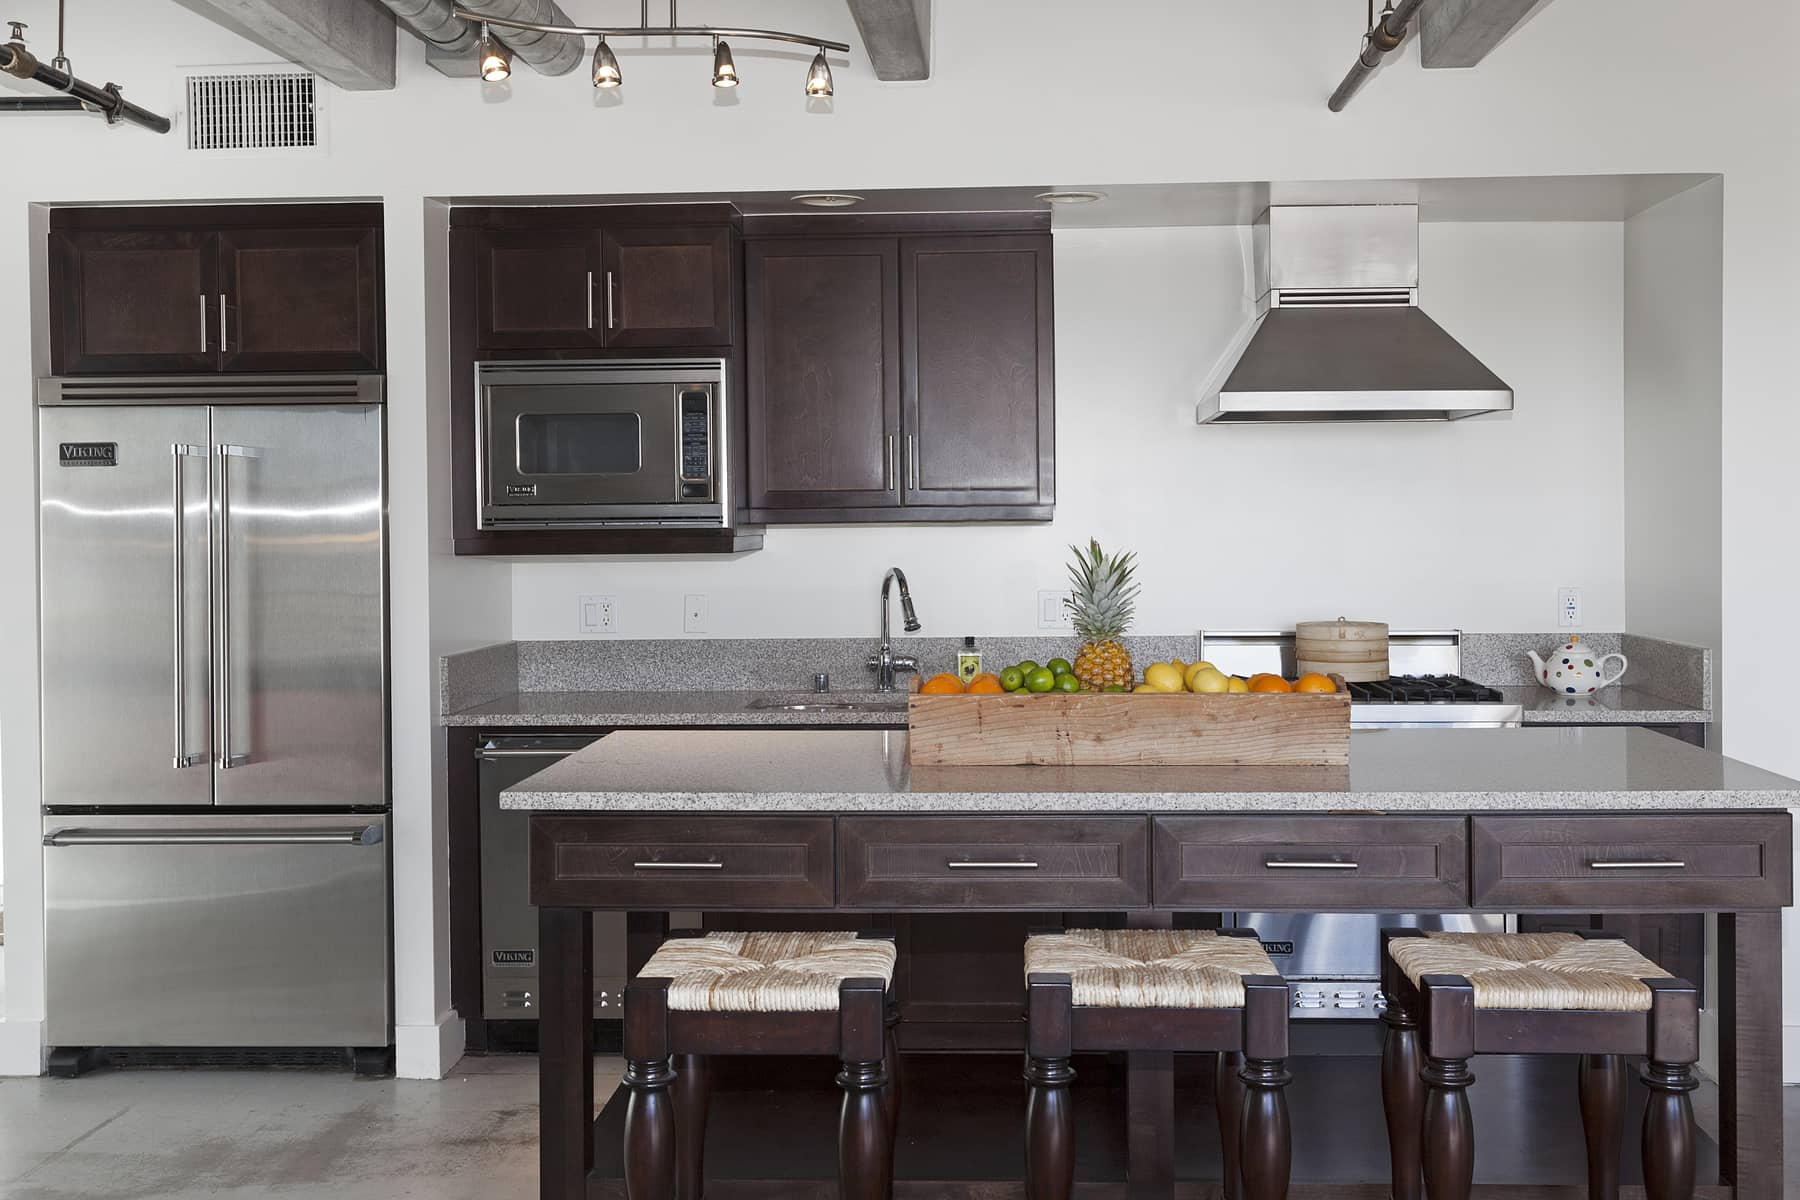 The kitchen boasts all Viking appliances and a huge island, featuring with a granite top that matches the counters along the sink and cooking area. And because this island is on wheels, you can esily move it around to reconfigure your space as needed.